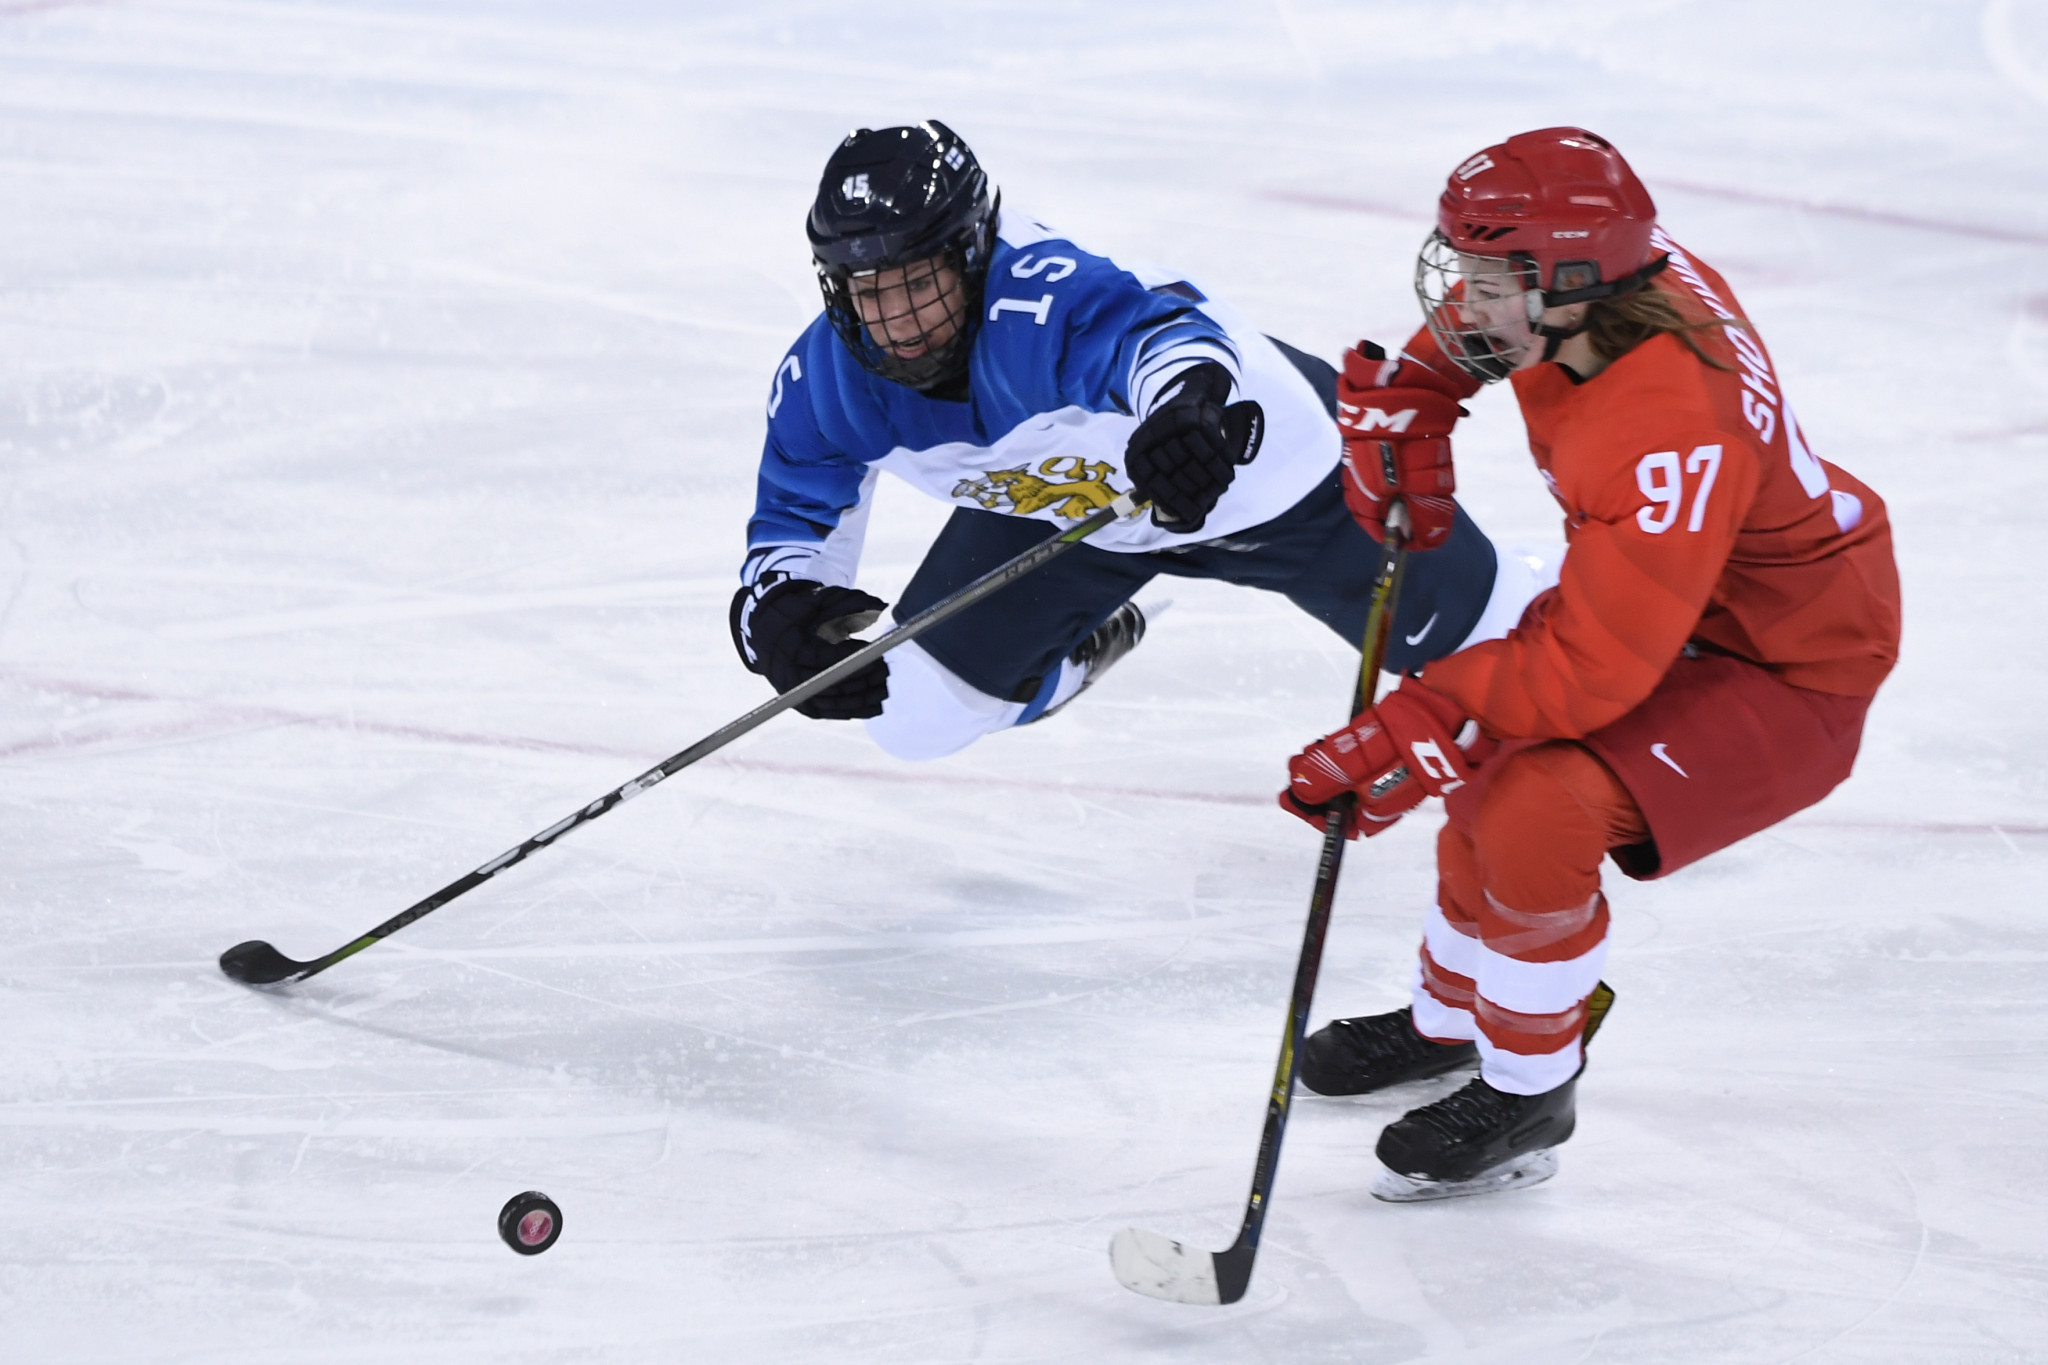 Russian ice hockey player cleared of doping by IOC suspended for kicking infraction at Pyeongchang 2018